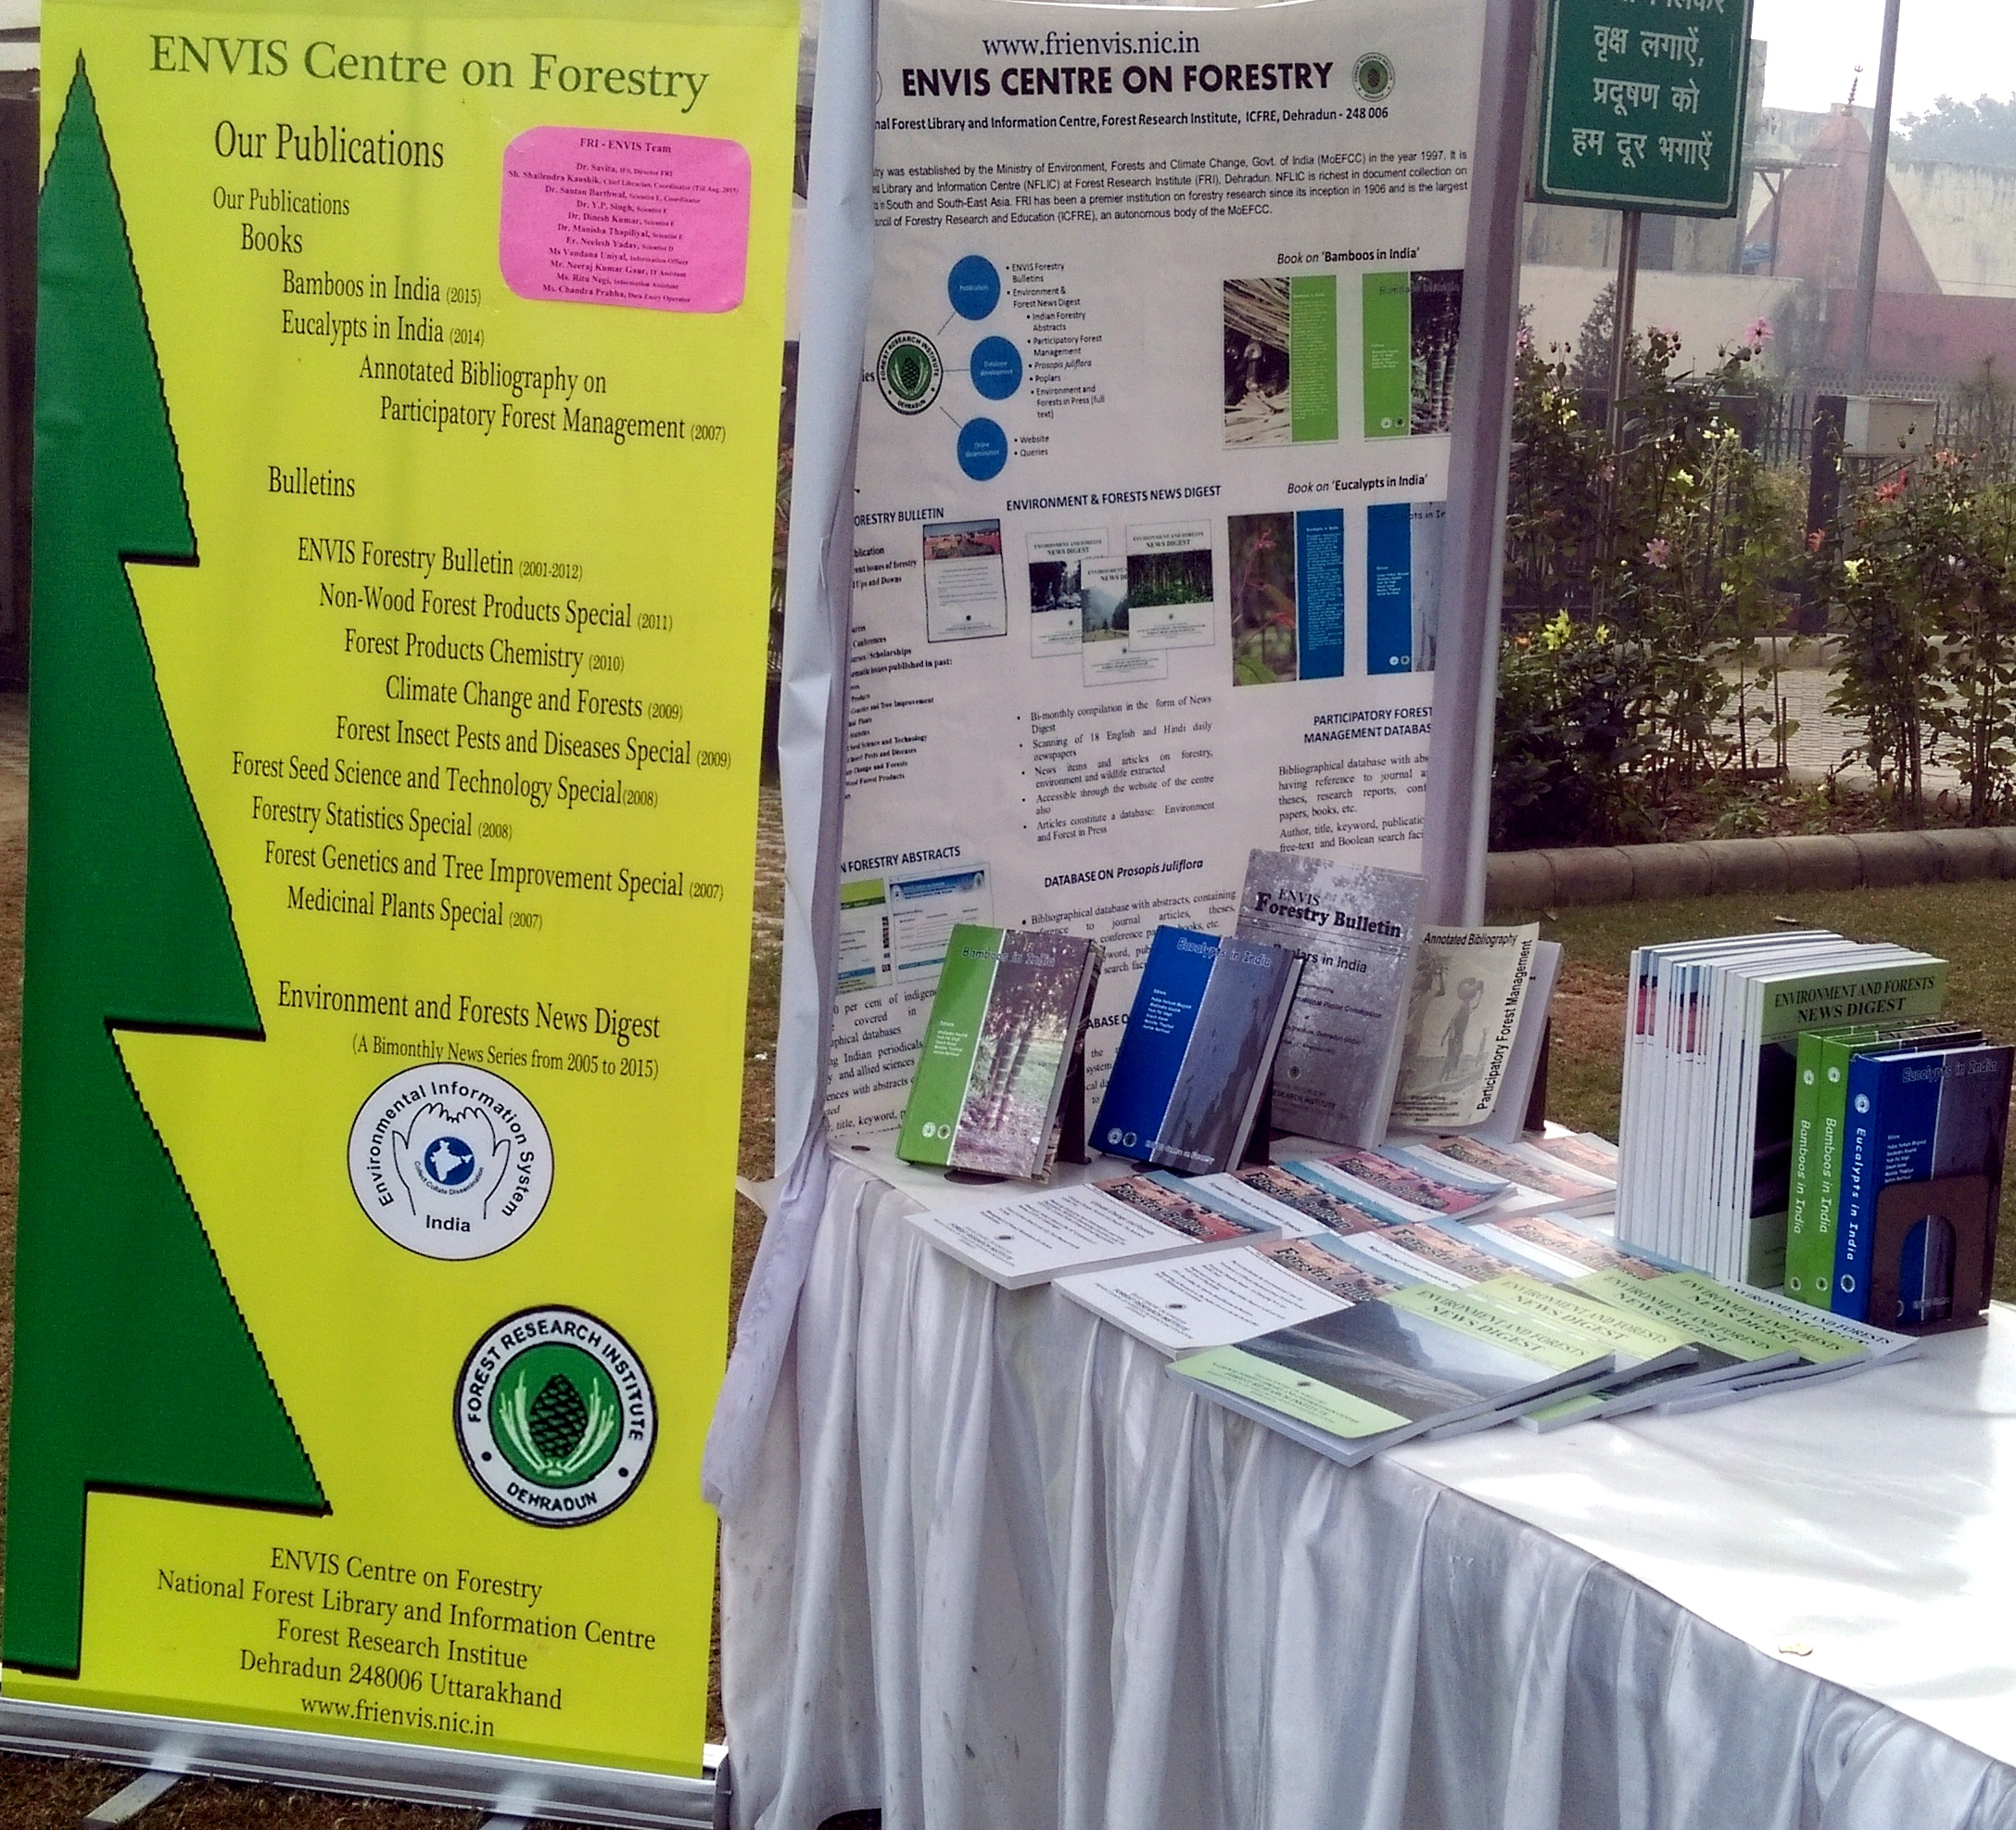 Participation in Exhibition by ENVIS Centre on Forestry Dehradun